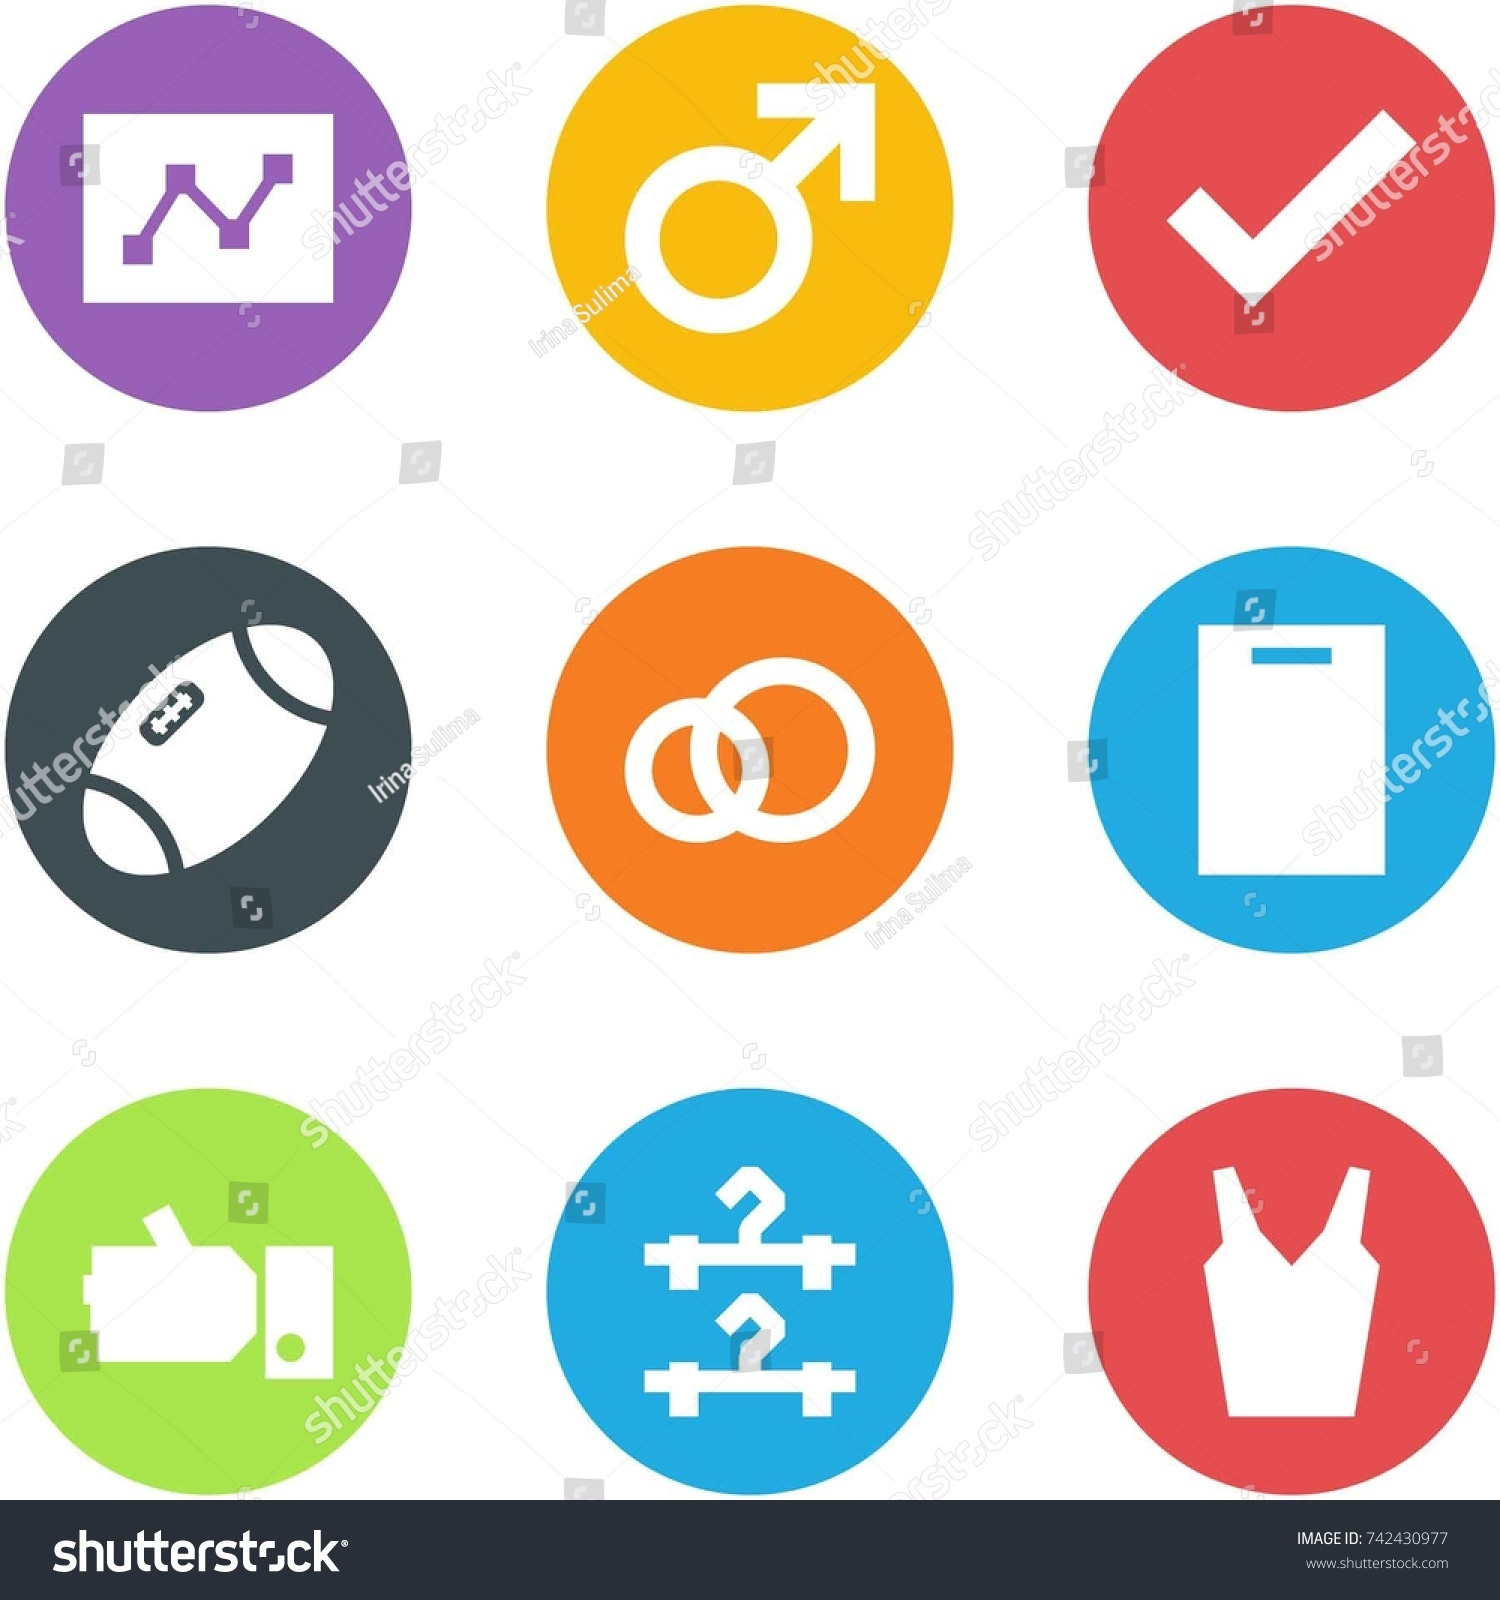 icon rings shutterstock sport stock image vector